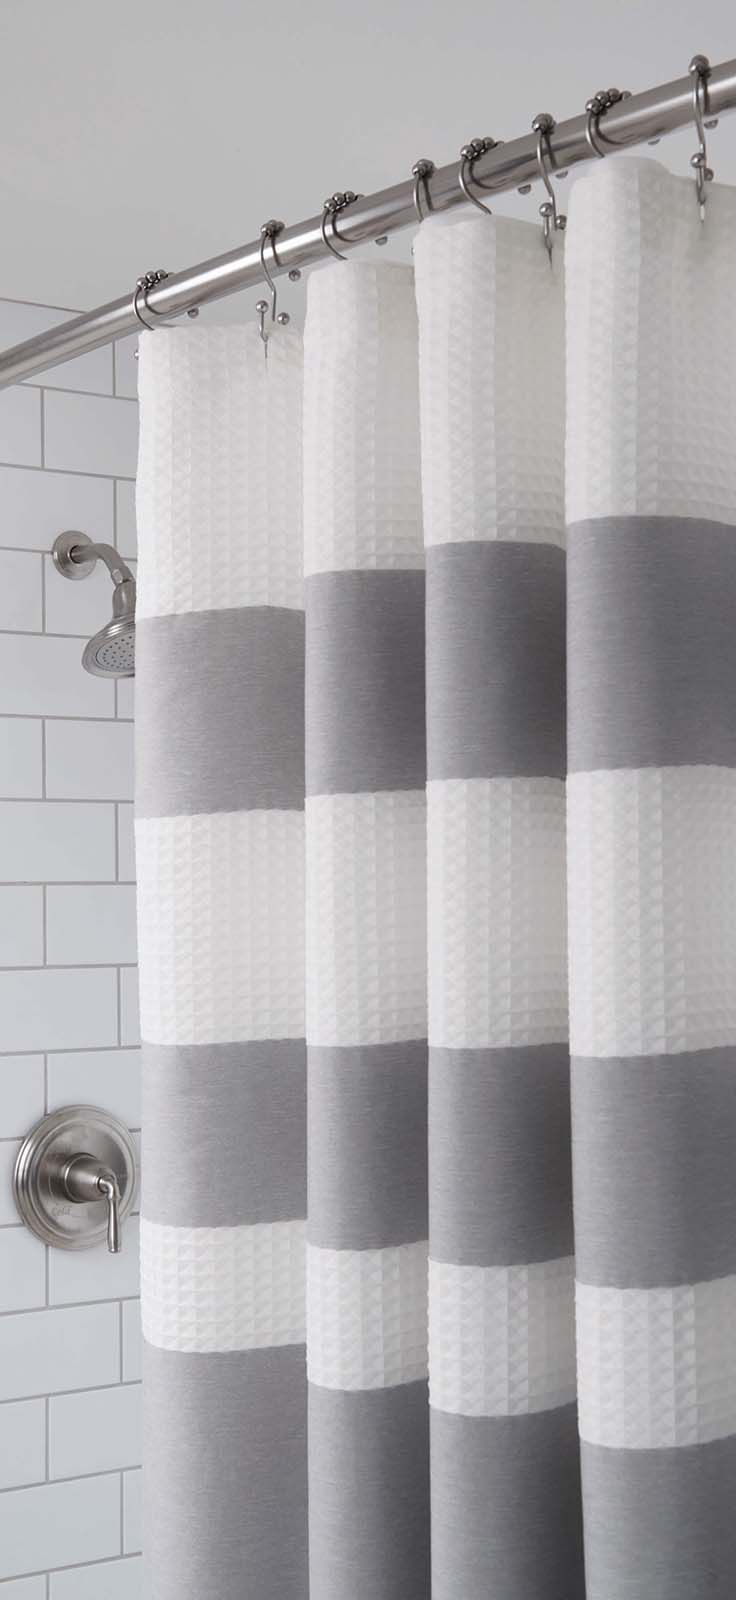 Black and white shower curtain bed bath and beyond - Better Homes And Gardens Waffle Stripe Fabric Shower Curtain